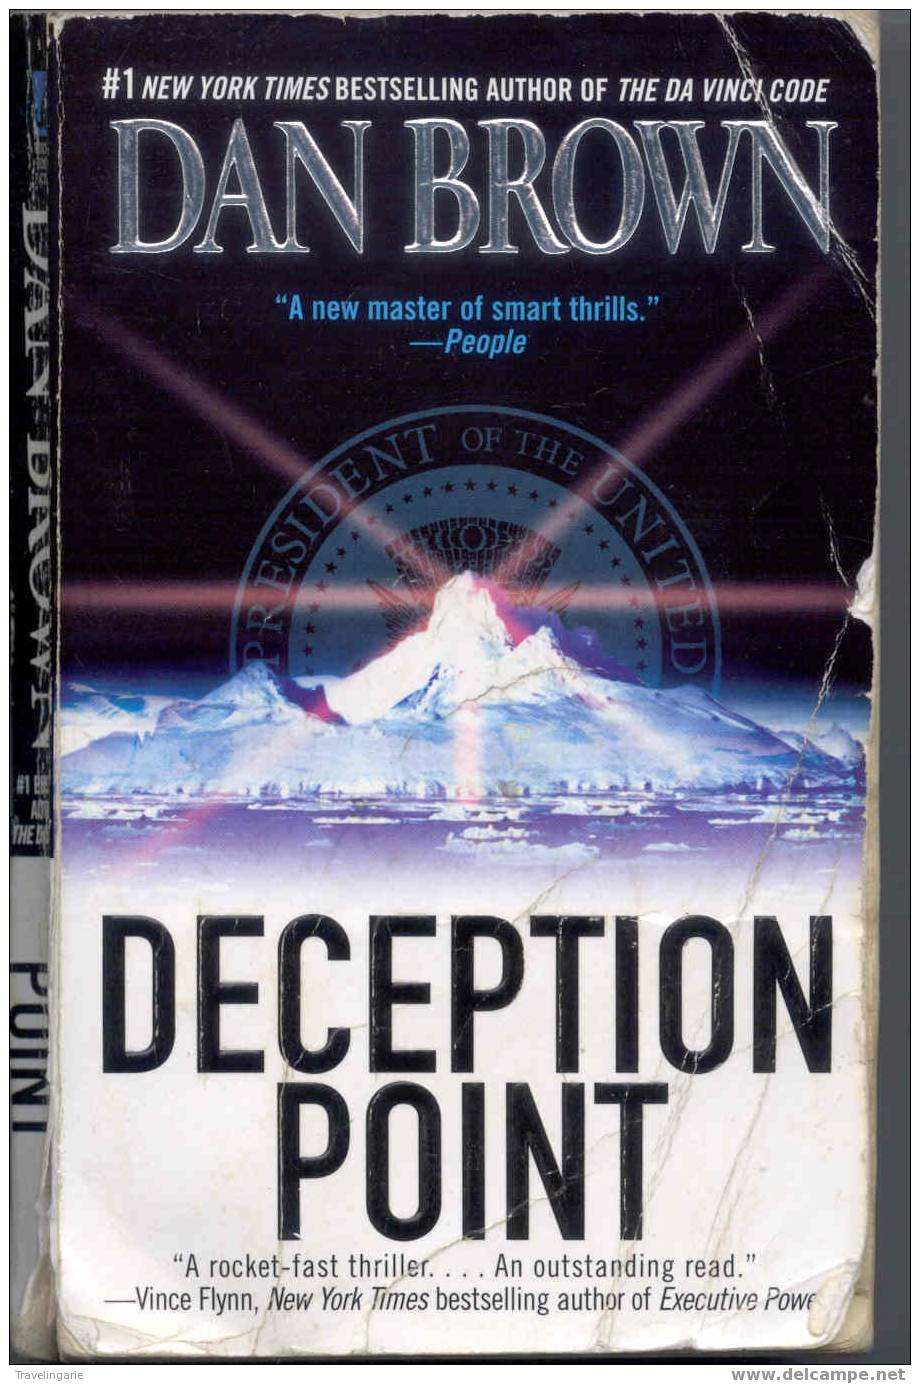 Book Cover Design Bengali : Deception point by dan brown bangla translated ebook